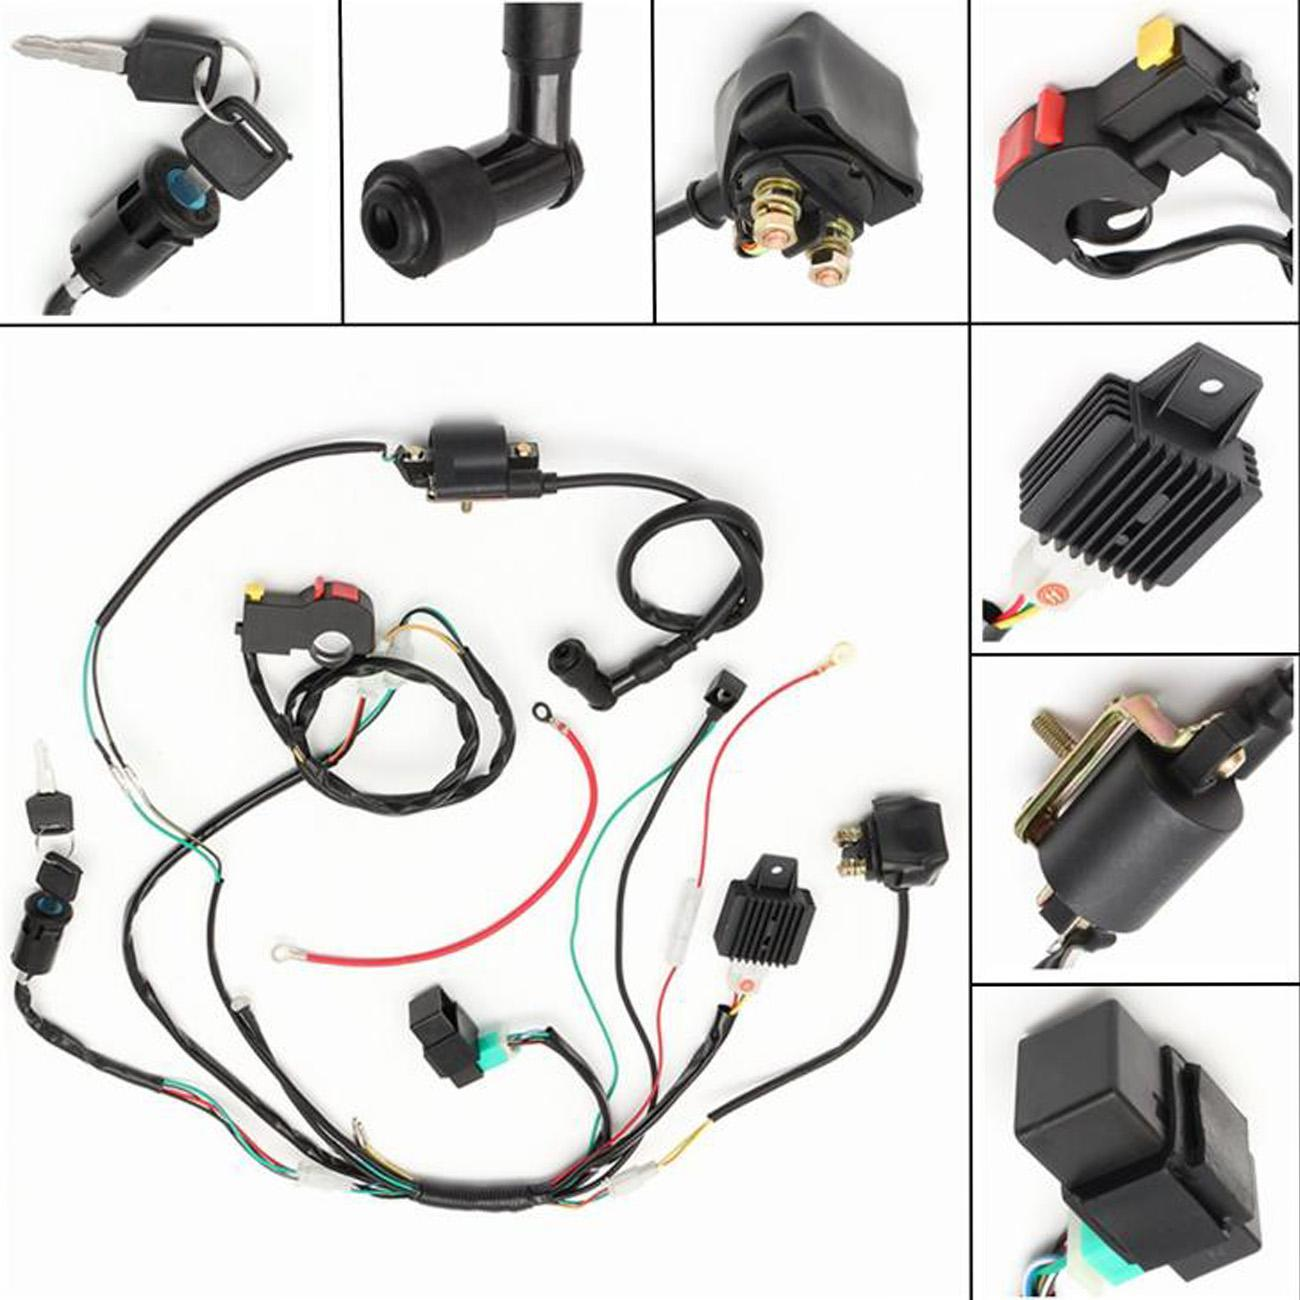 hight resolution of details about 50 70 90 110cc 125 cdi wire harness assembly atv electric start quad wiring kit